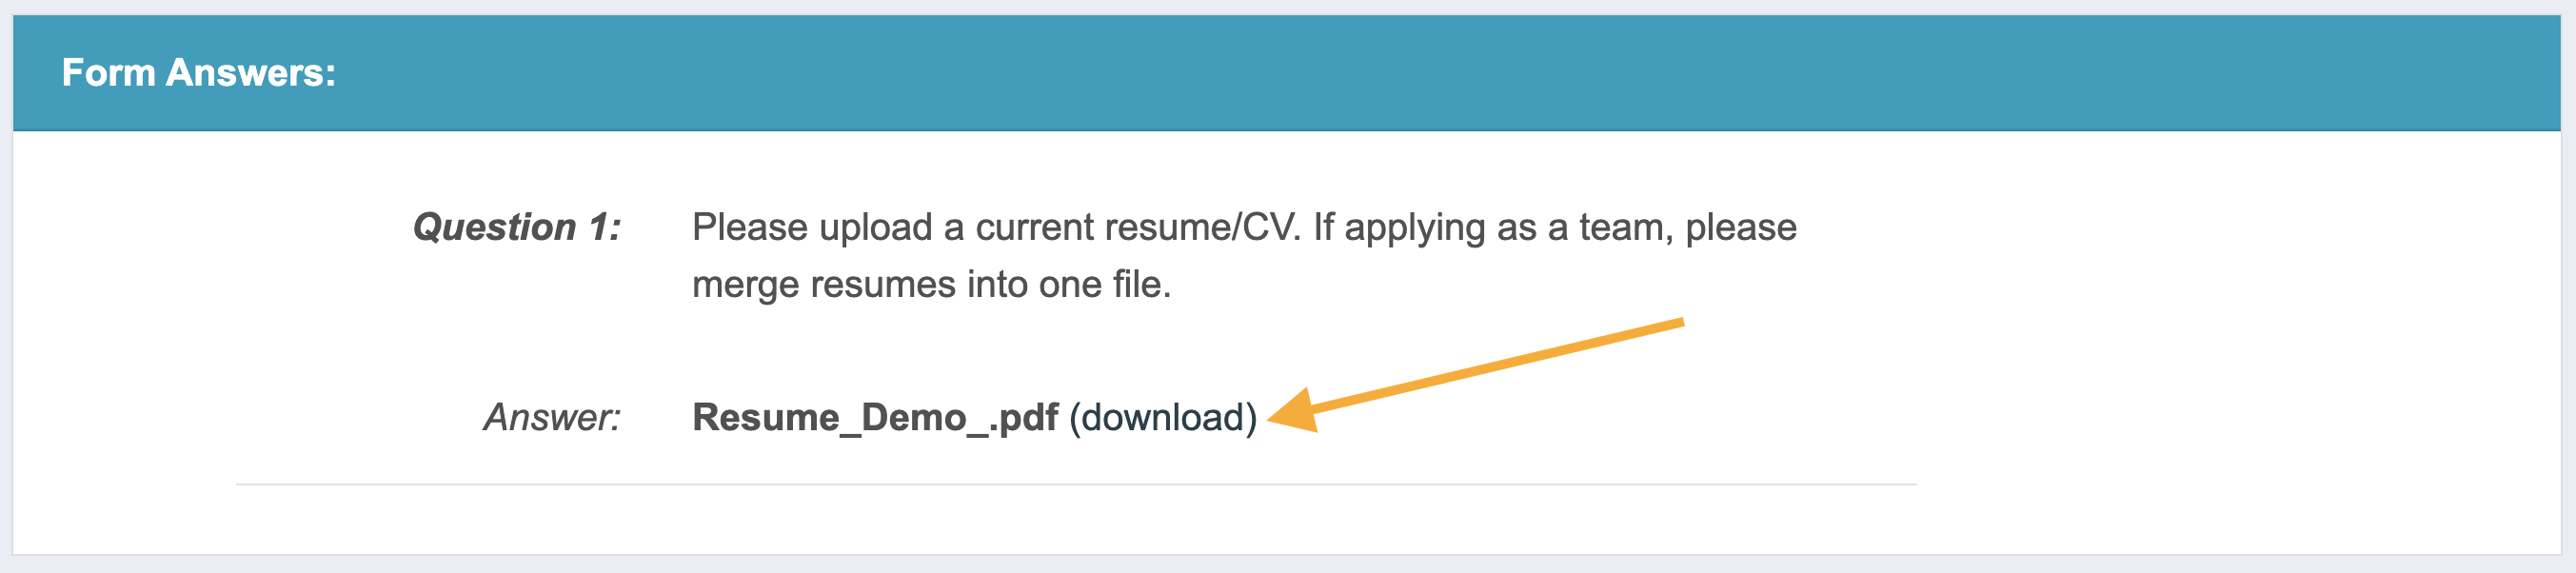 Screenshot of the Form Answers section of the artist application with an arrow pointing to the file download link.